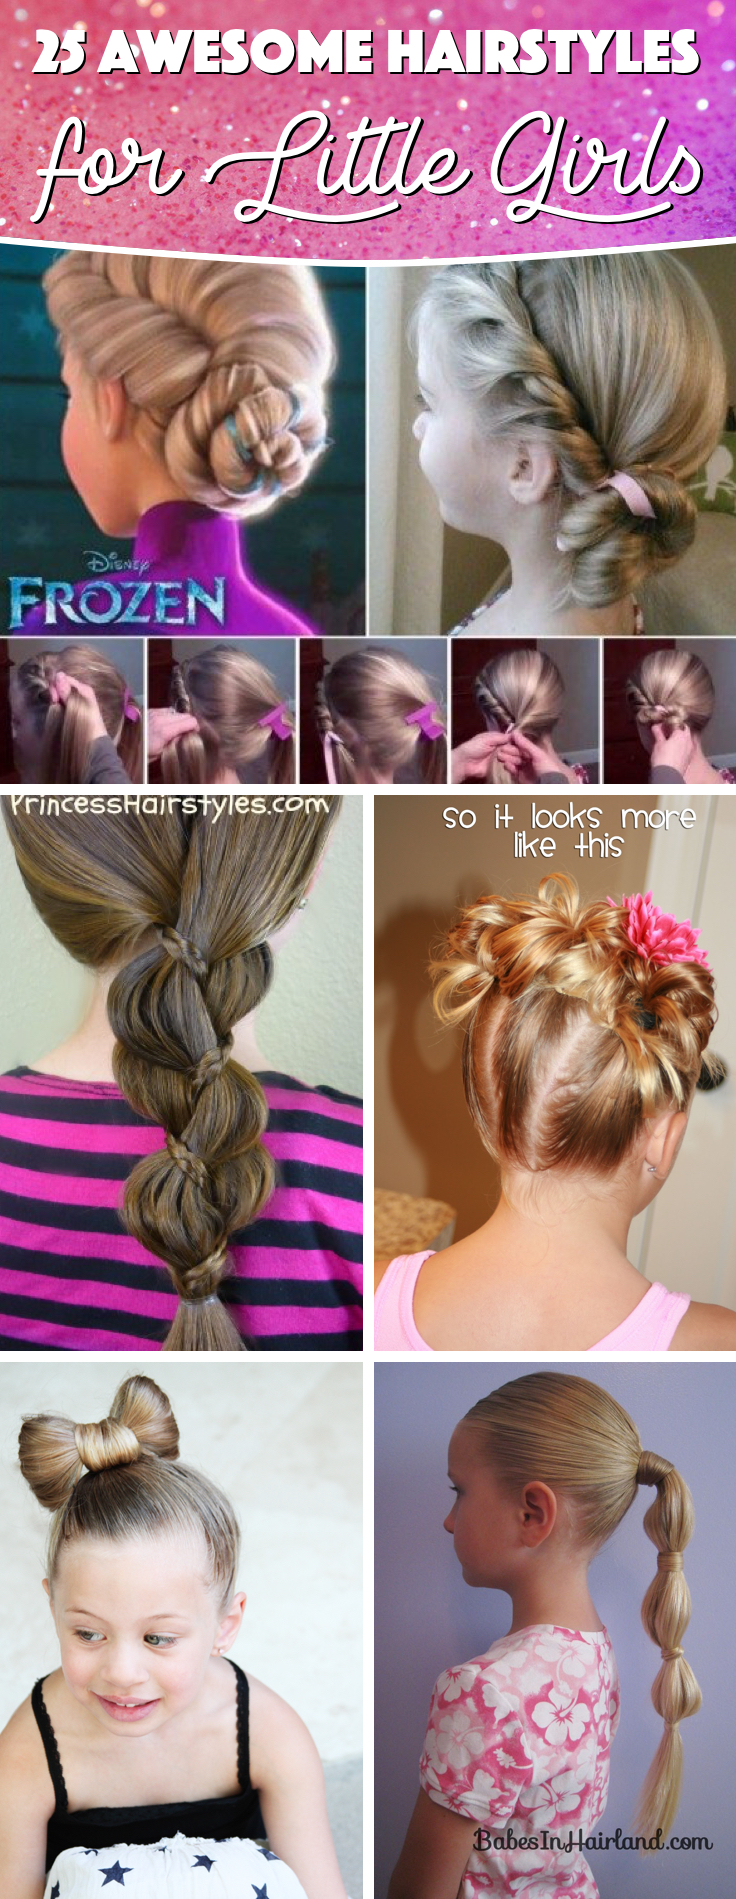 25 Awesome Hairstyles For Little Girls Making Them Look Absolutely